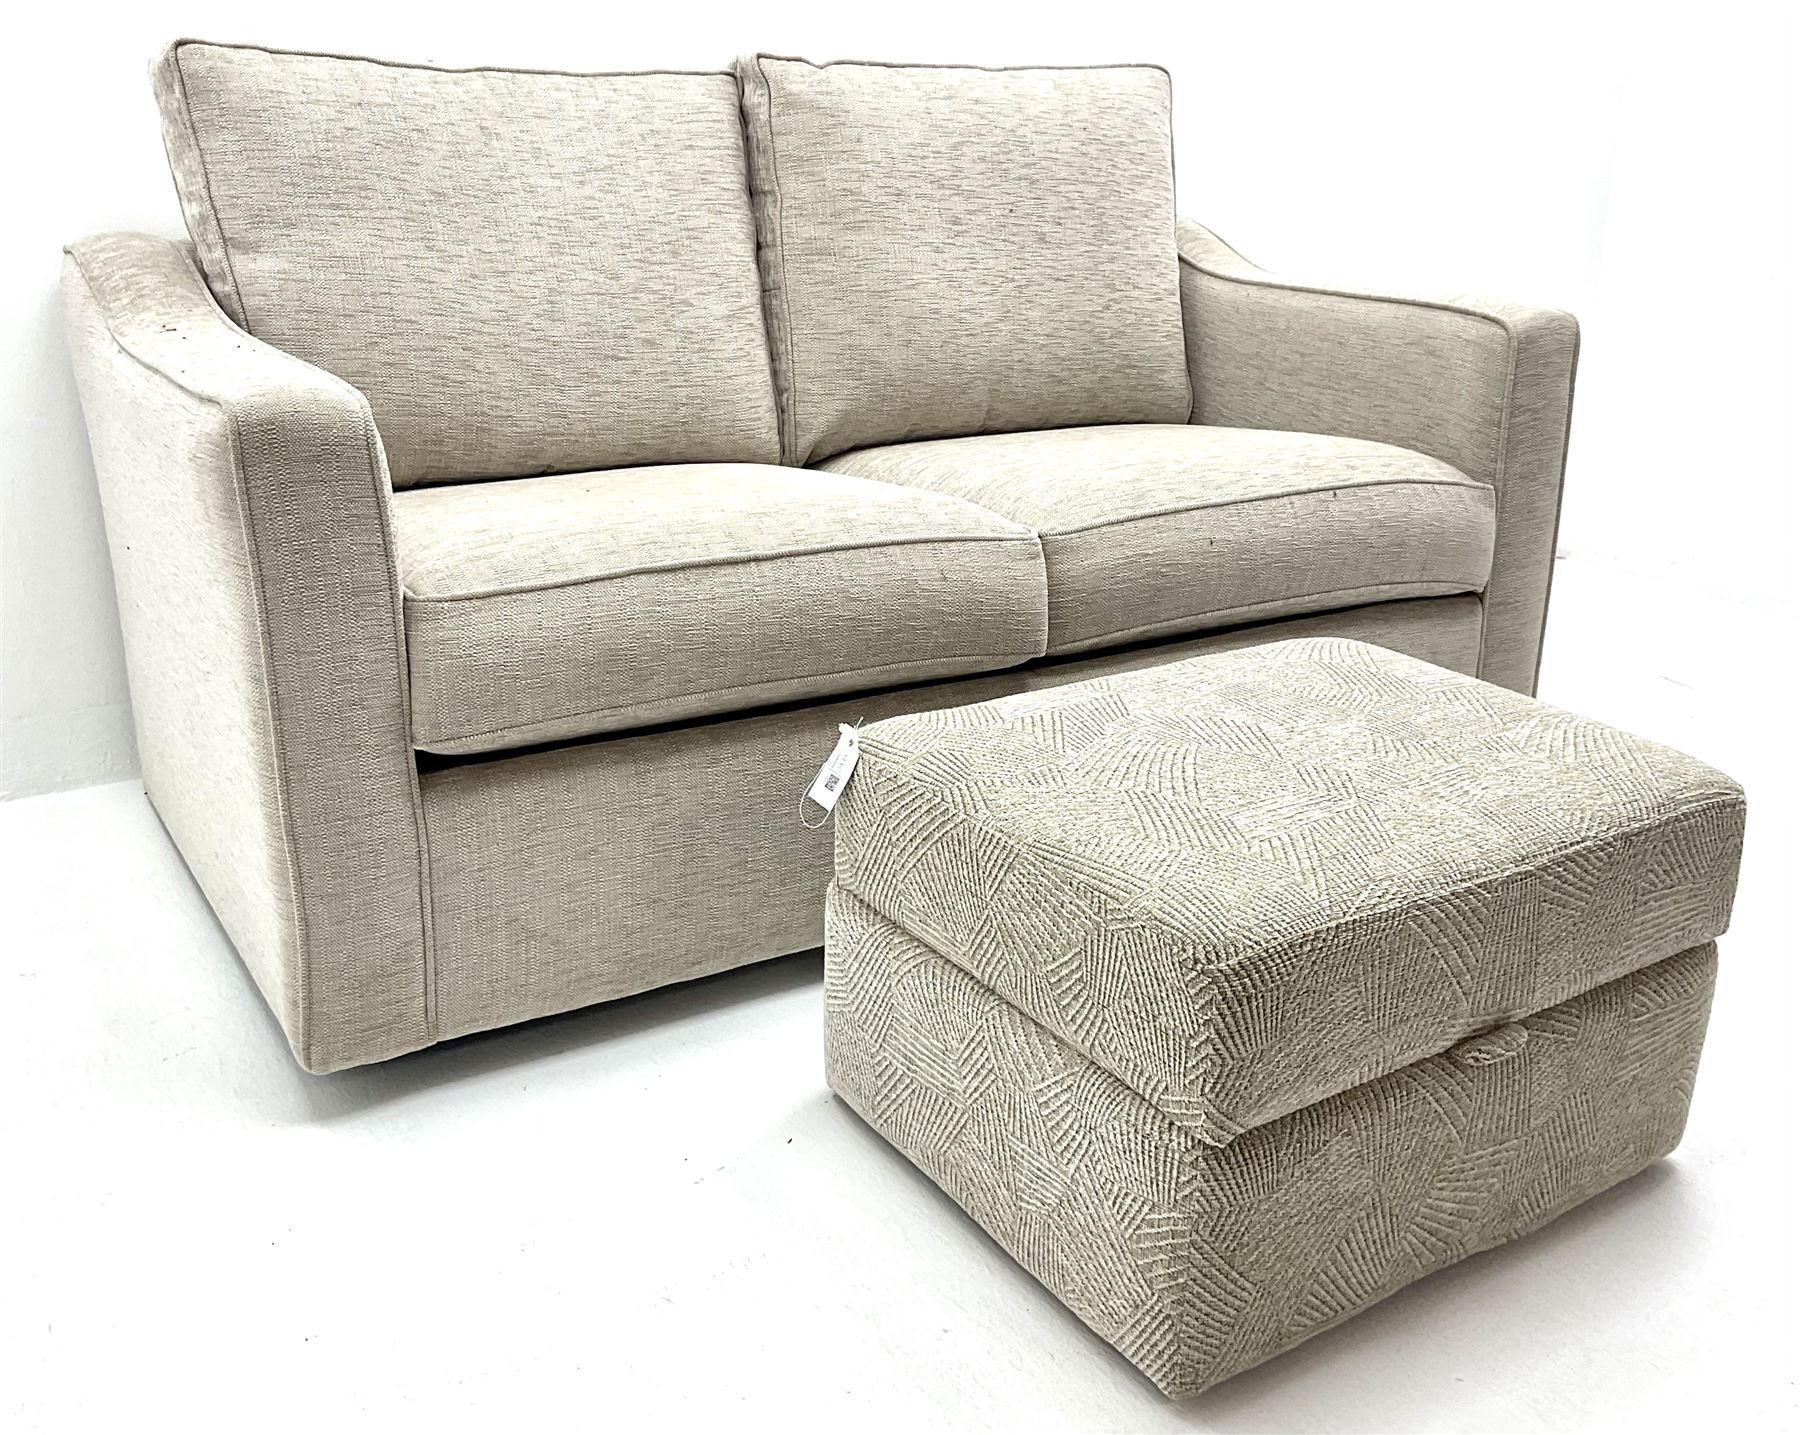 Two seat metal action sofa bed upholstered in a neutral fabric (W157cm) with storage stool (2) - Image 2 of 3